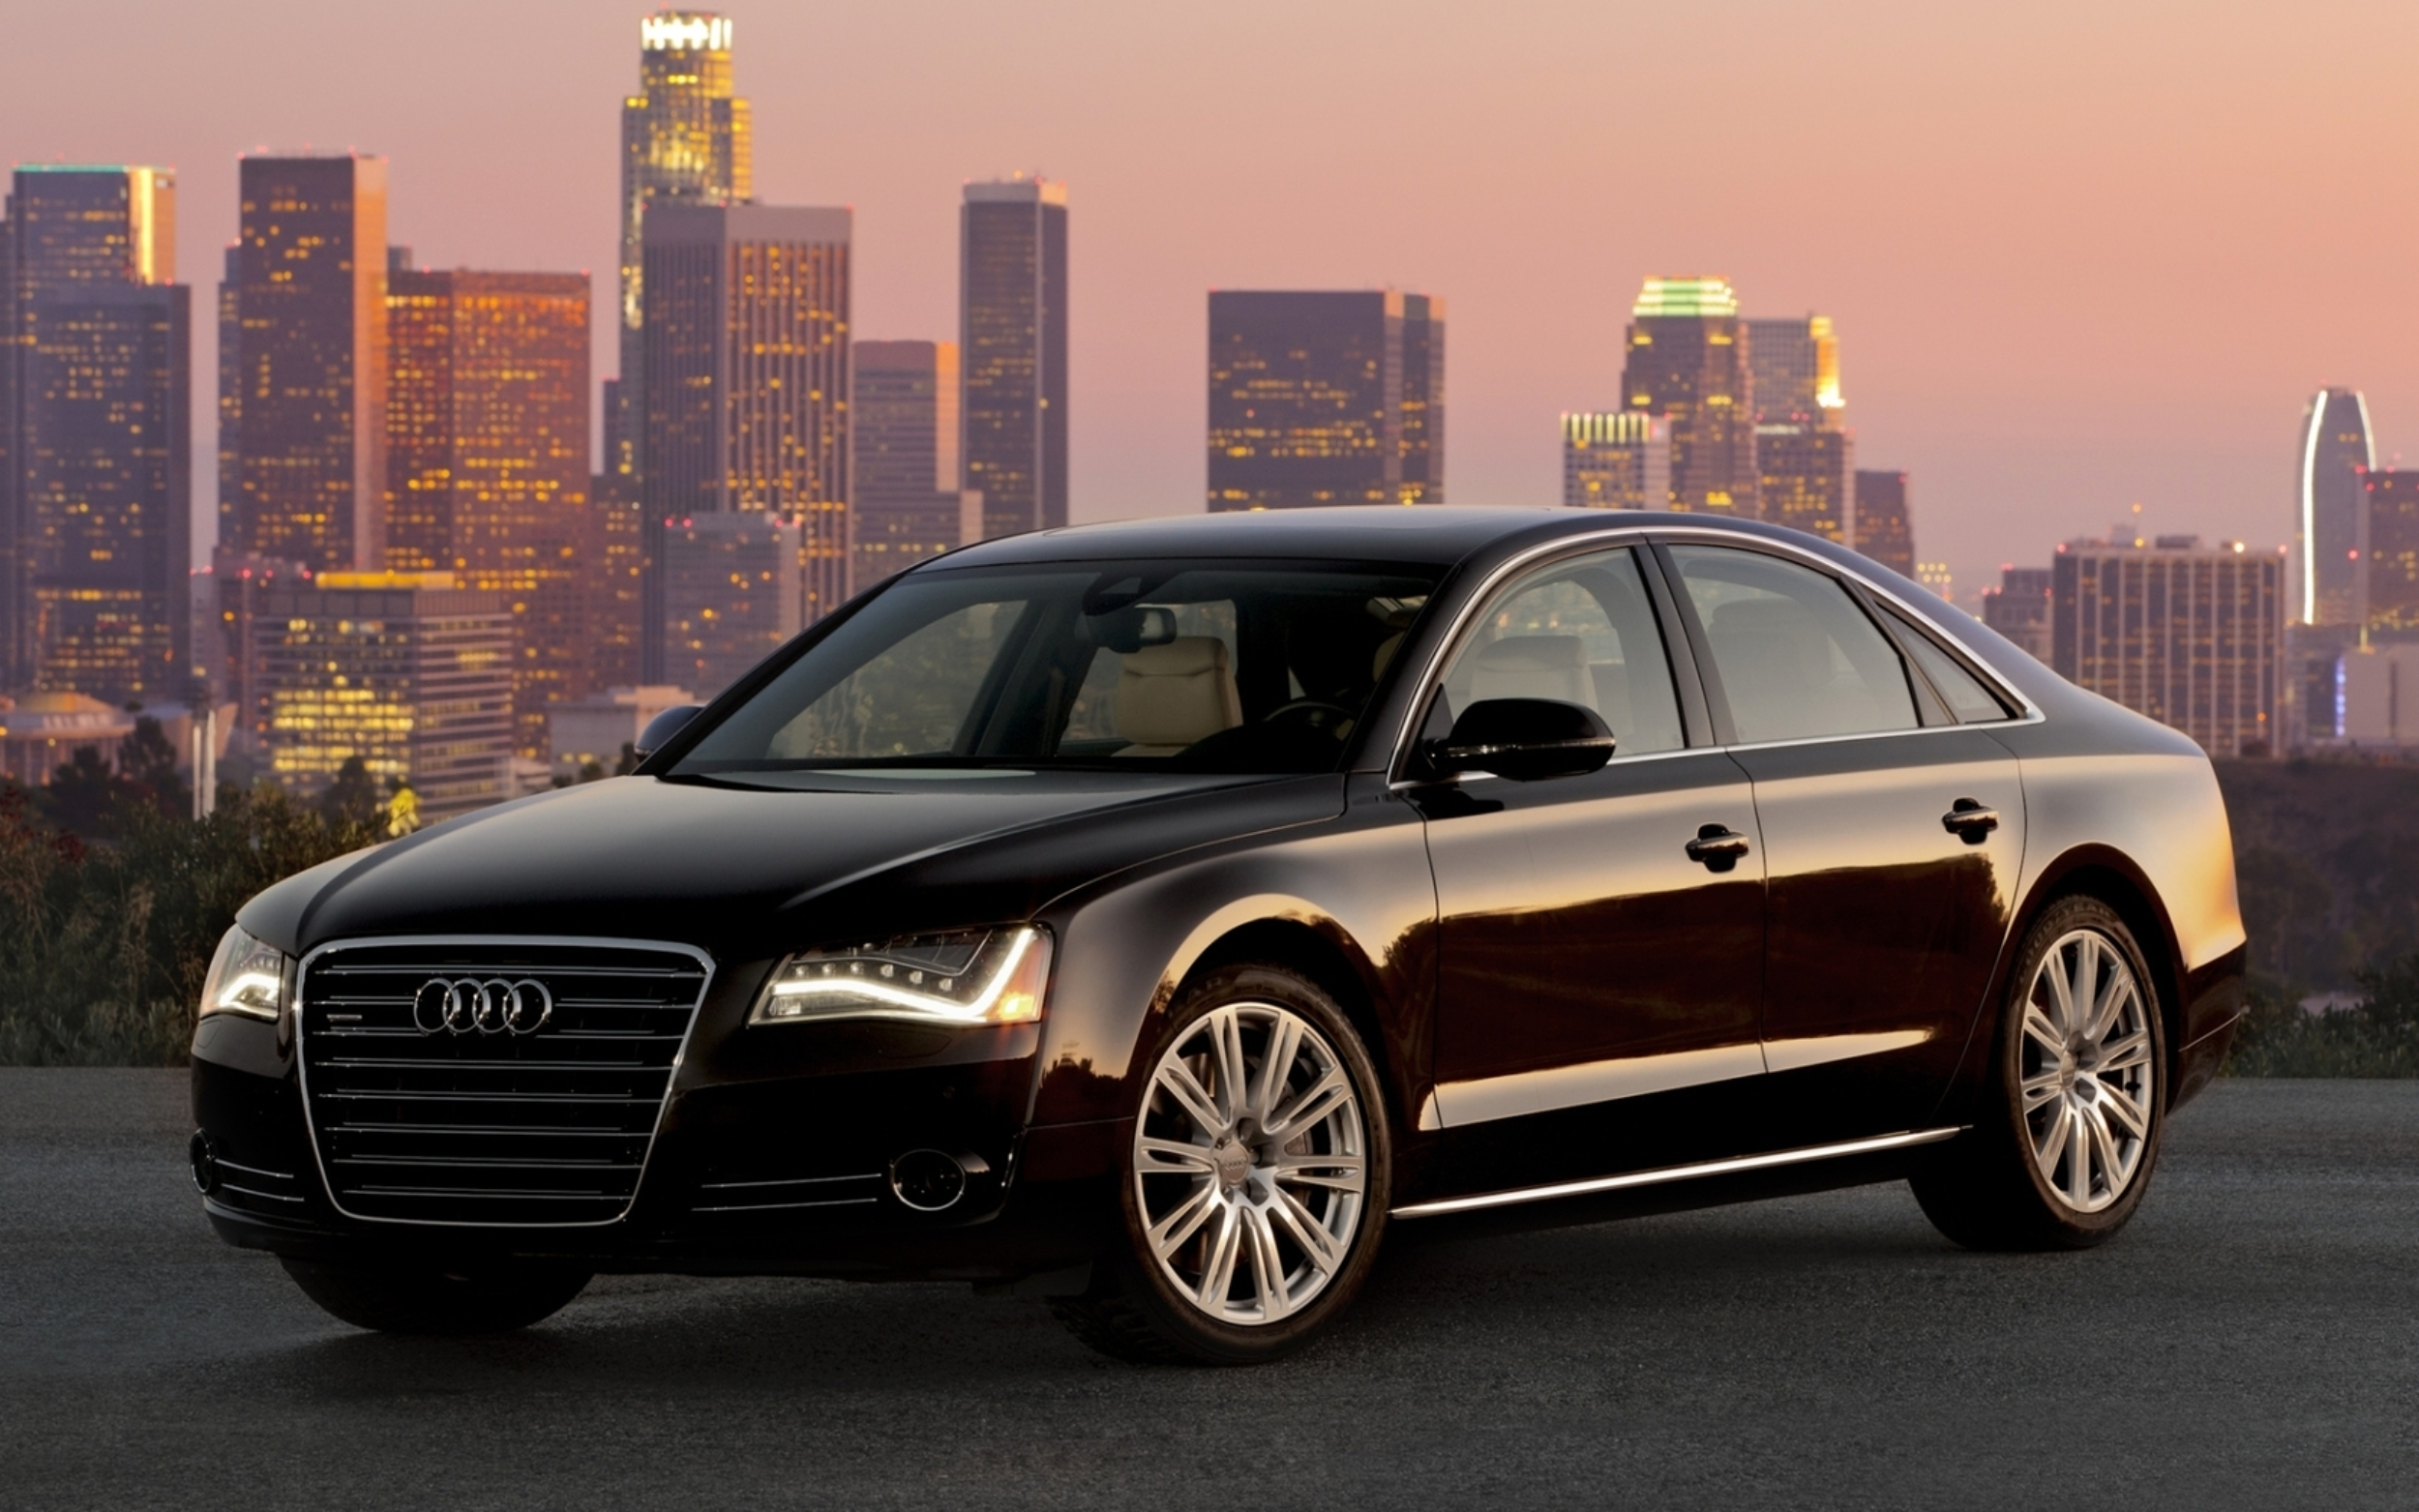 Audi A8 Black Car Wallpapers 2500x1563 1755615